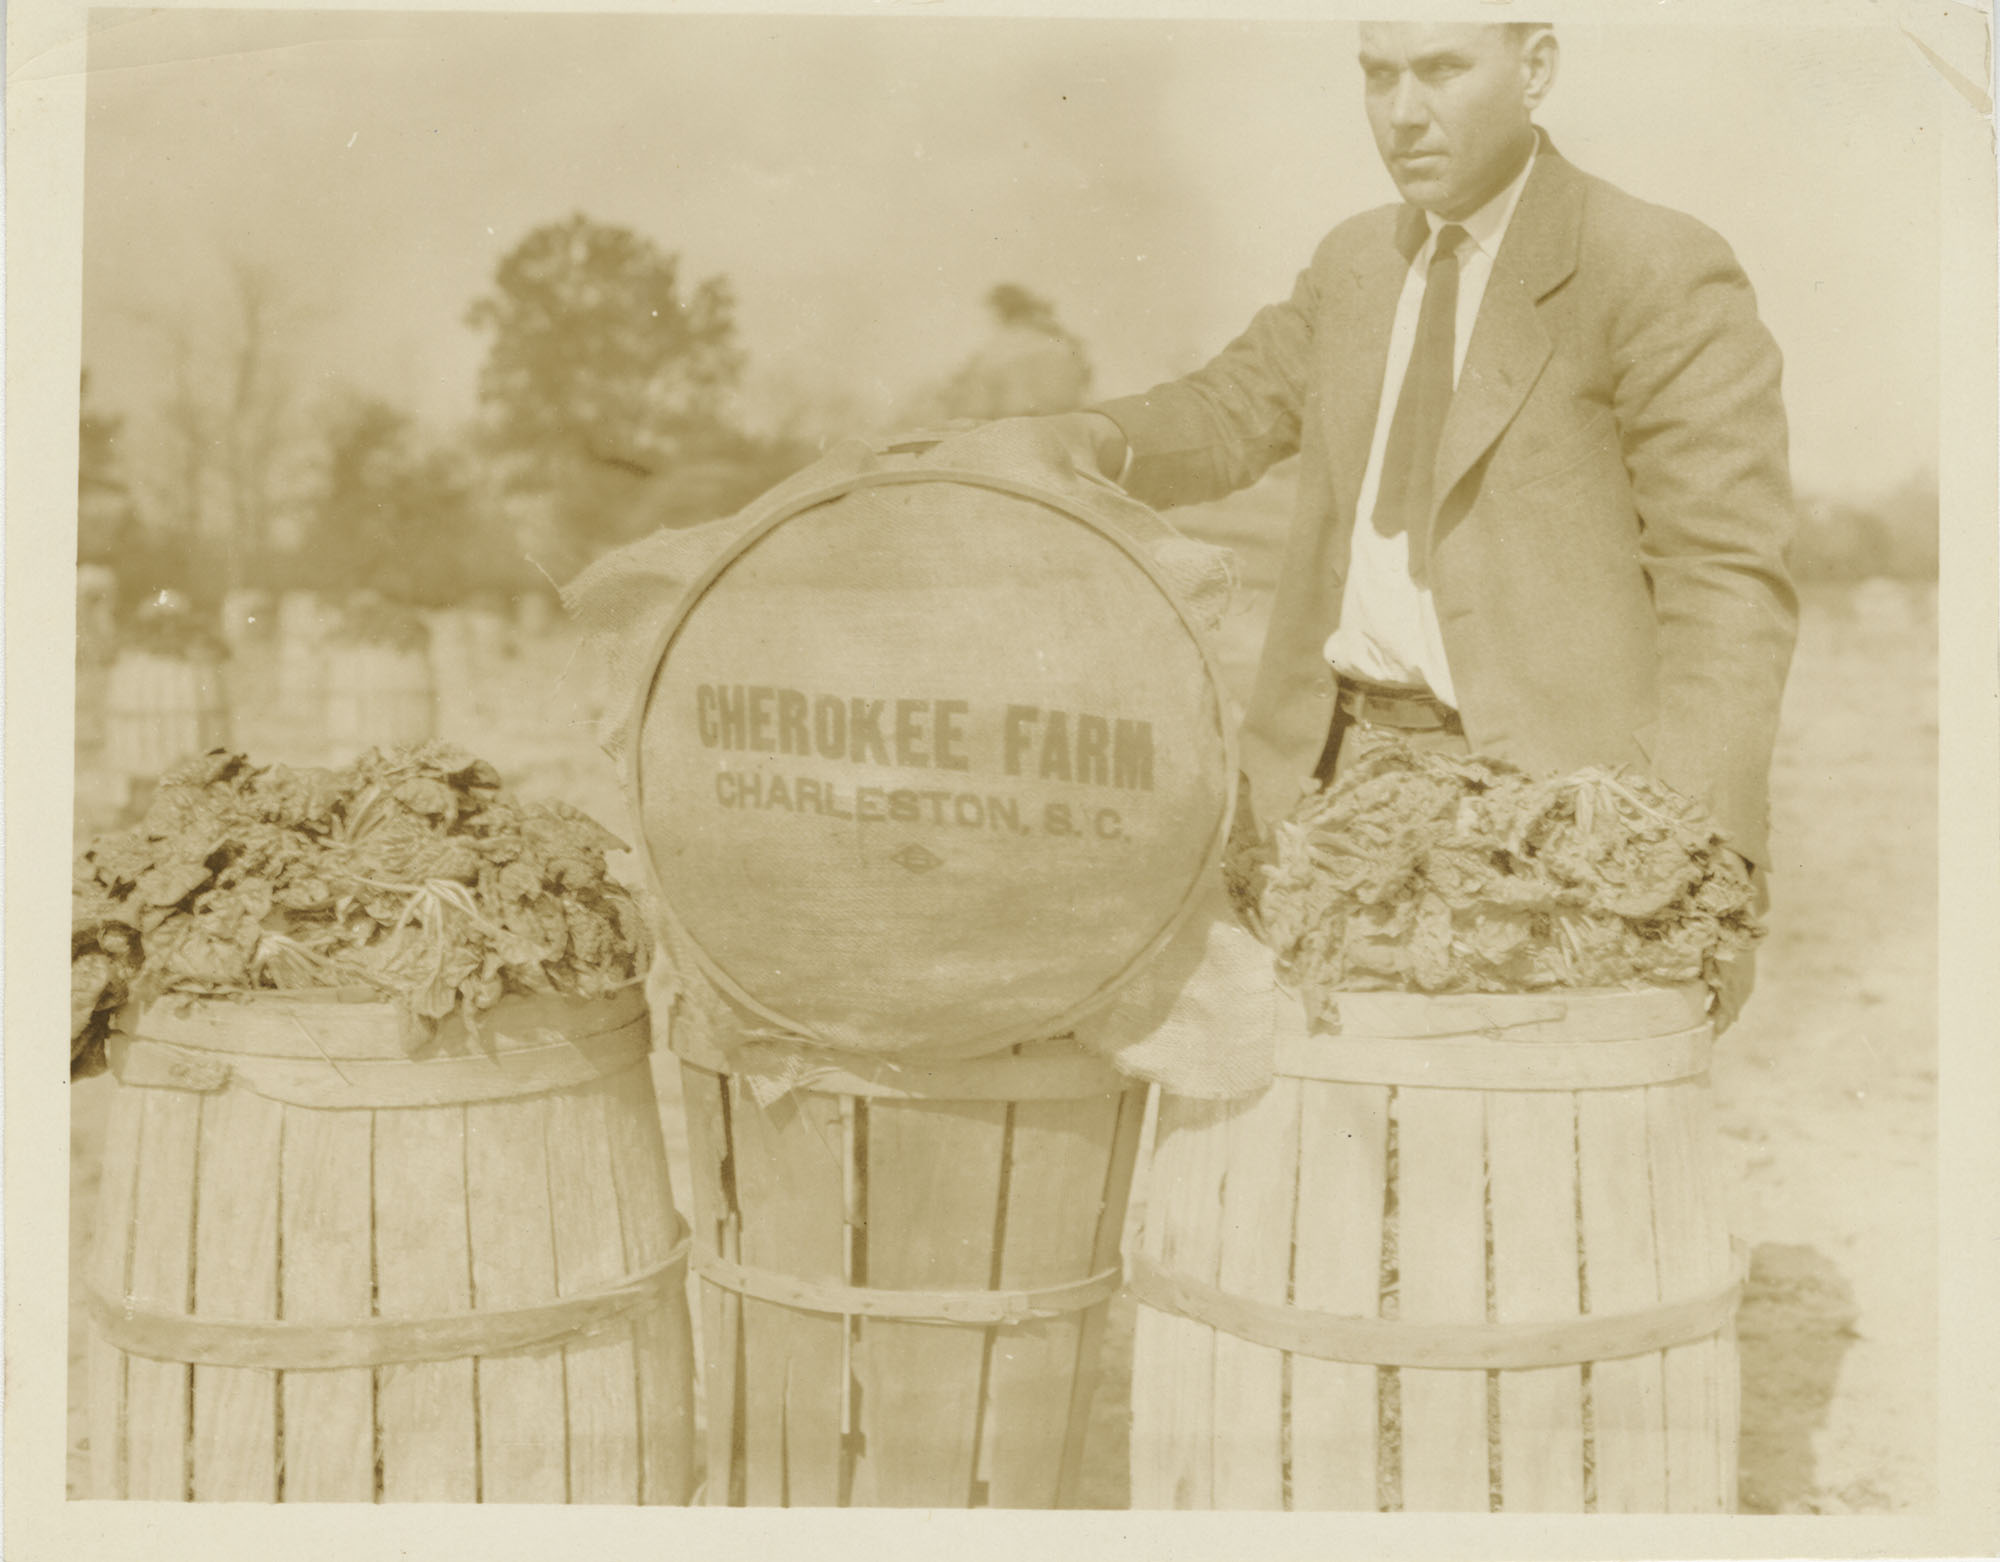 Man with Barrels of Cherokee Farm Spinach